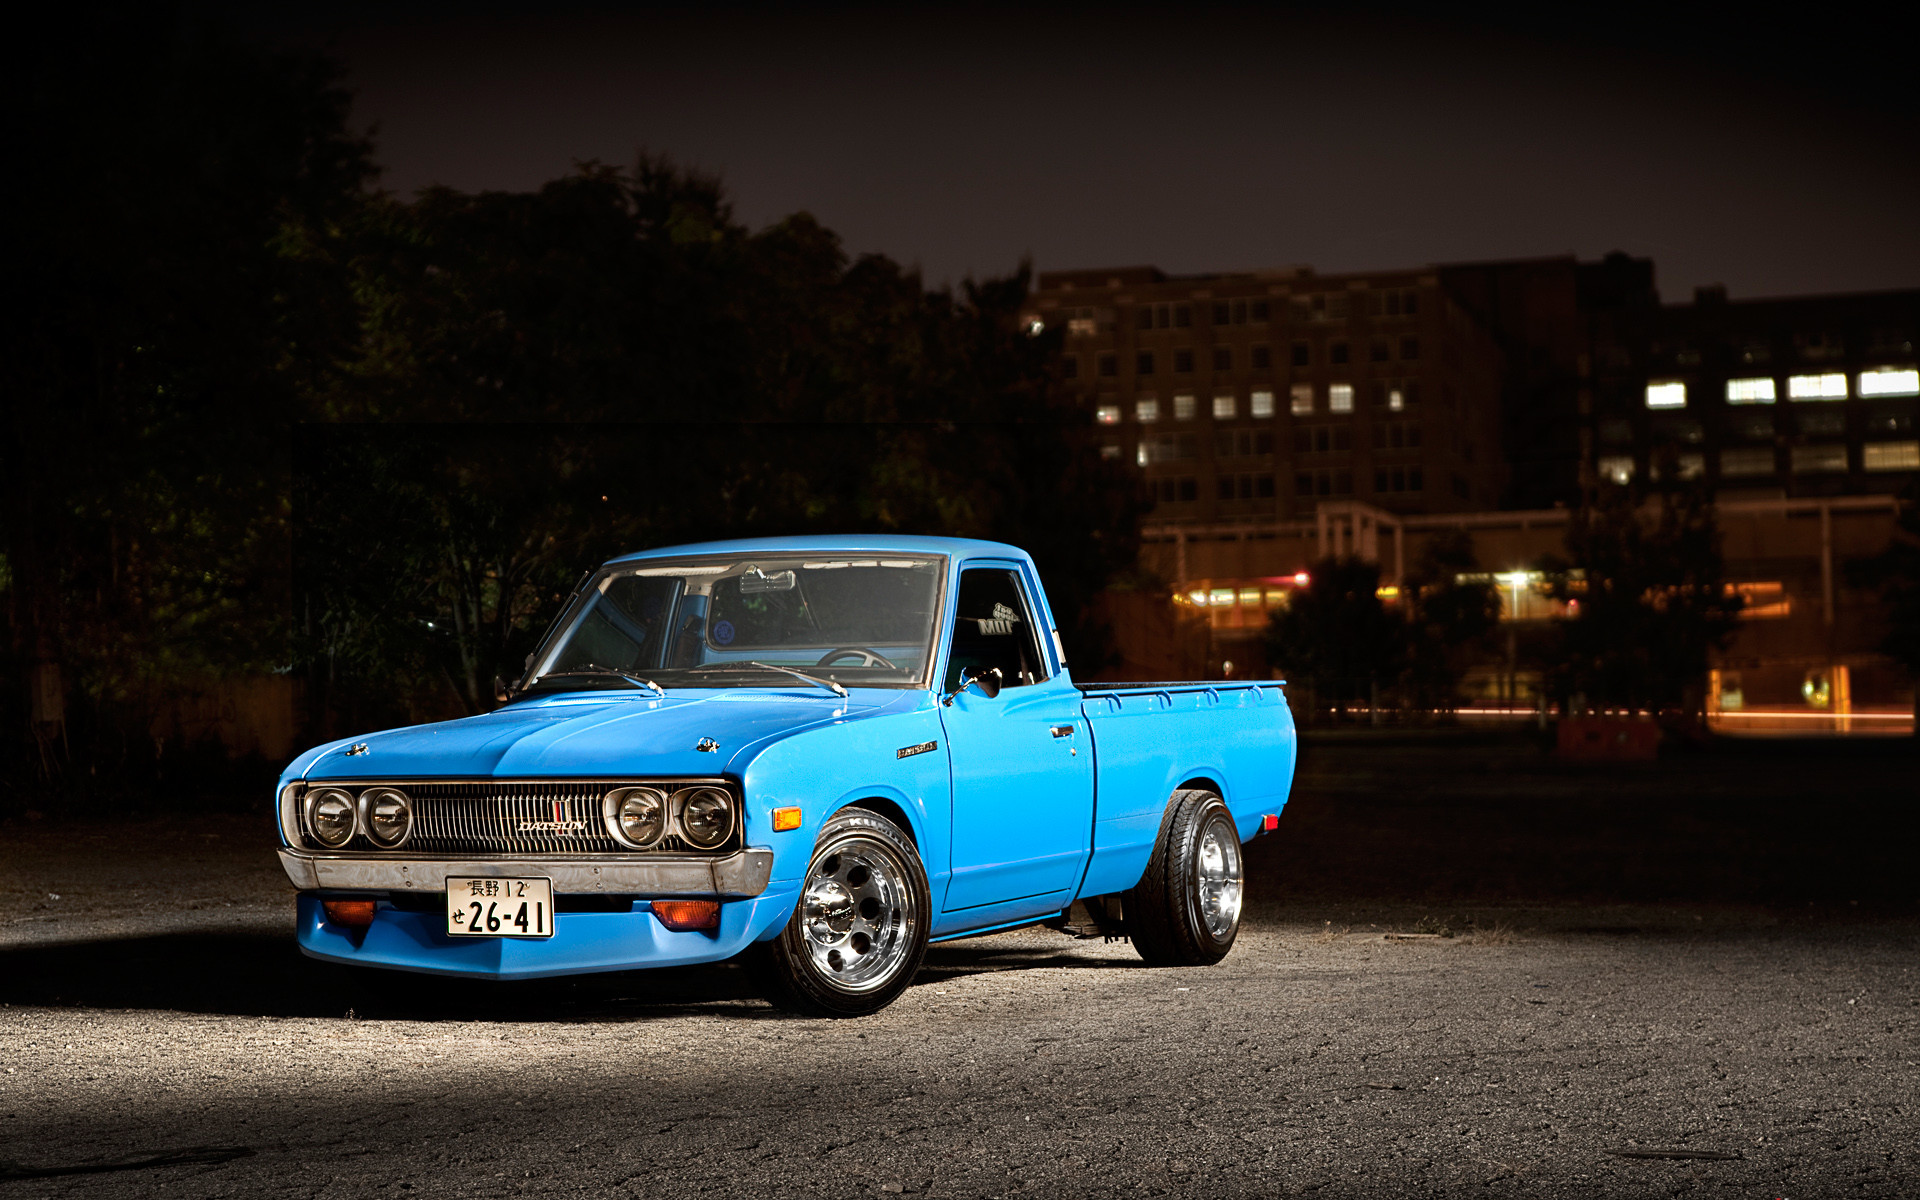 Custom Car Wallpapers 69 Background Pictures 1955 Ford F100 Screensaver 1920x1080 Classic Wallpaper Downloads